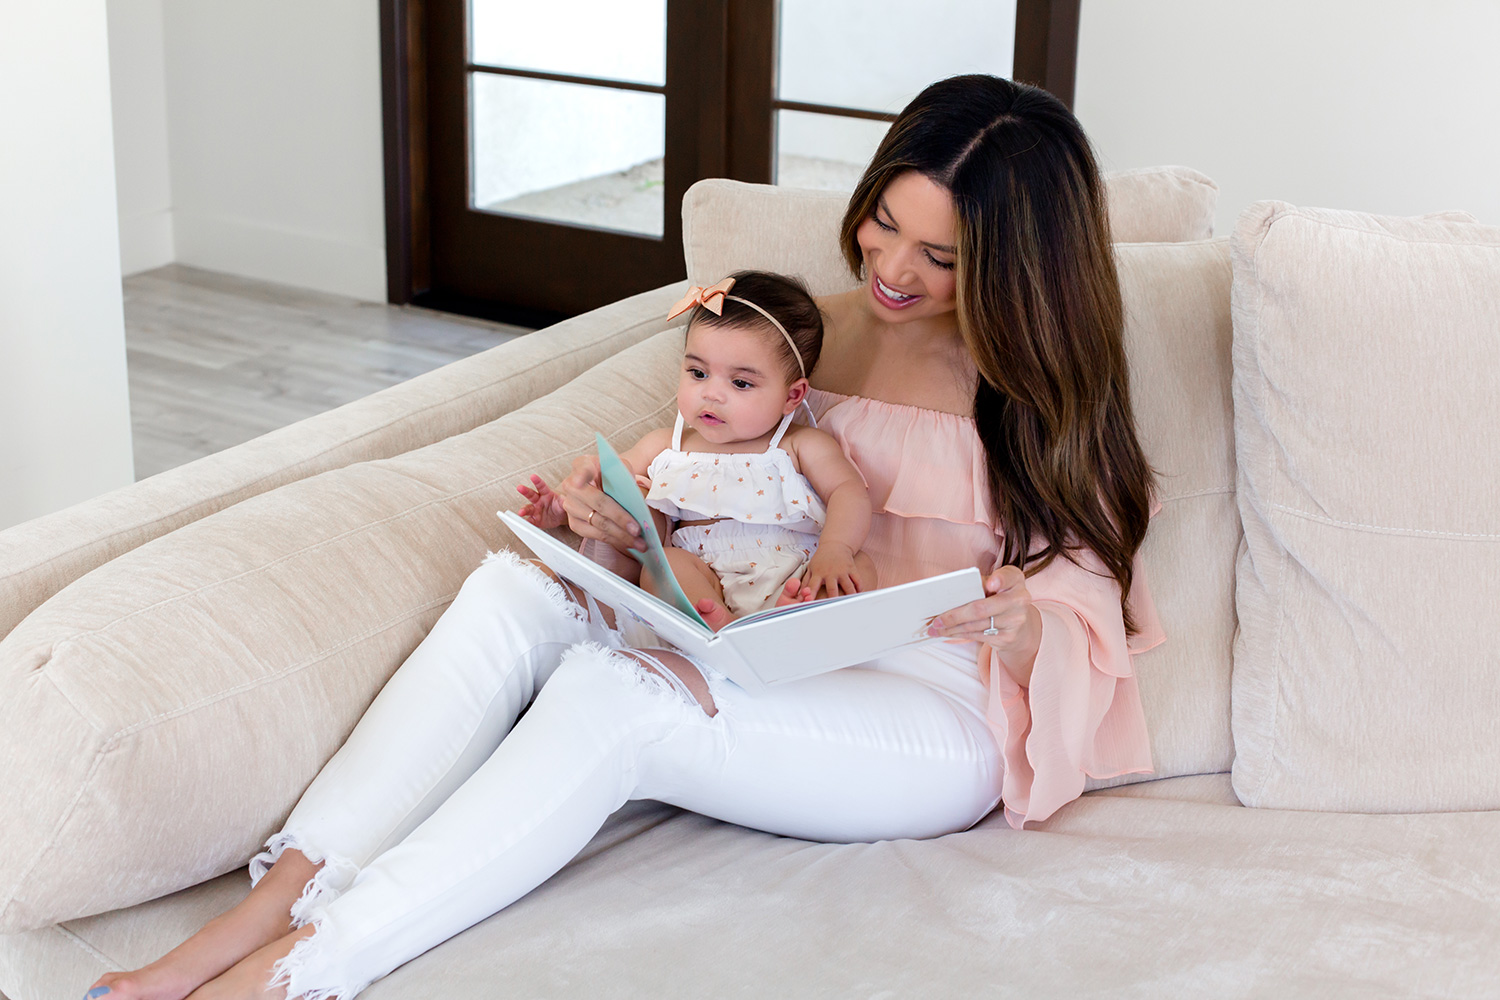 Jessi Malay and Baby Alessandra reading